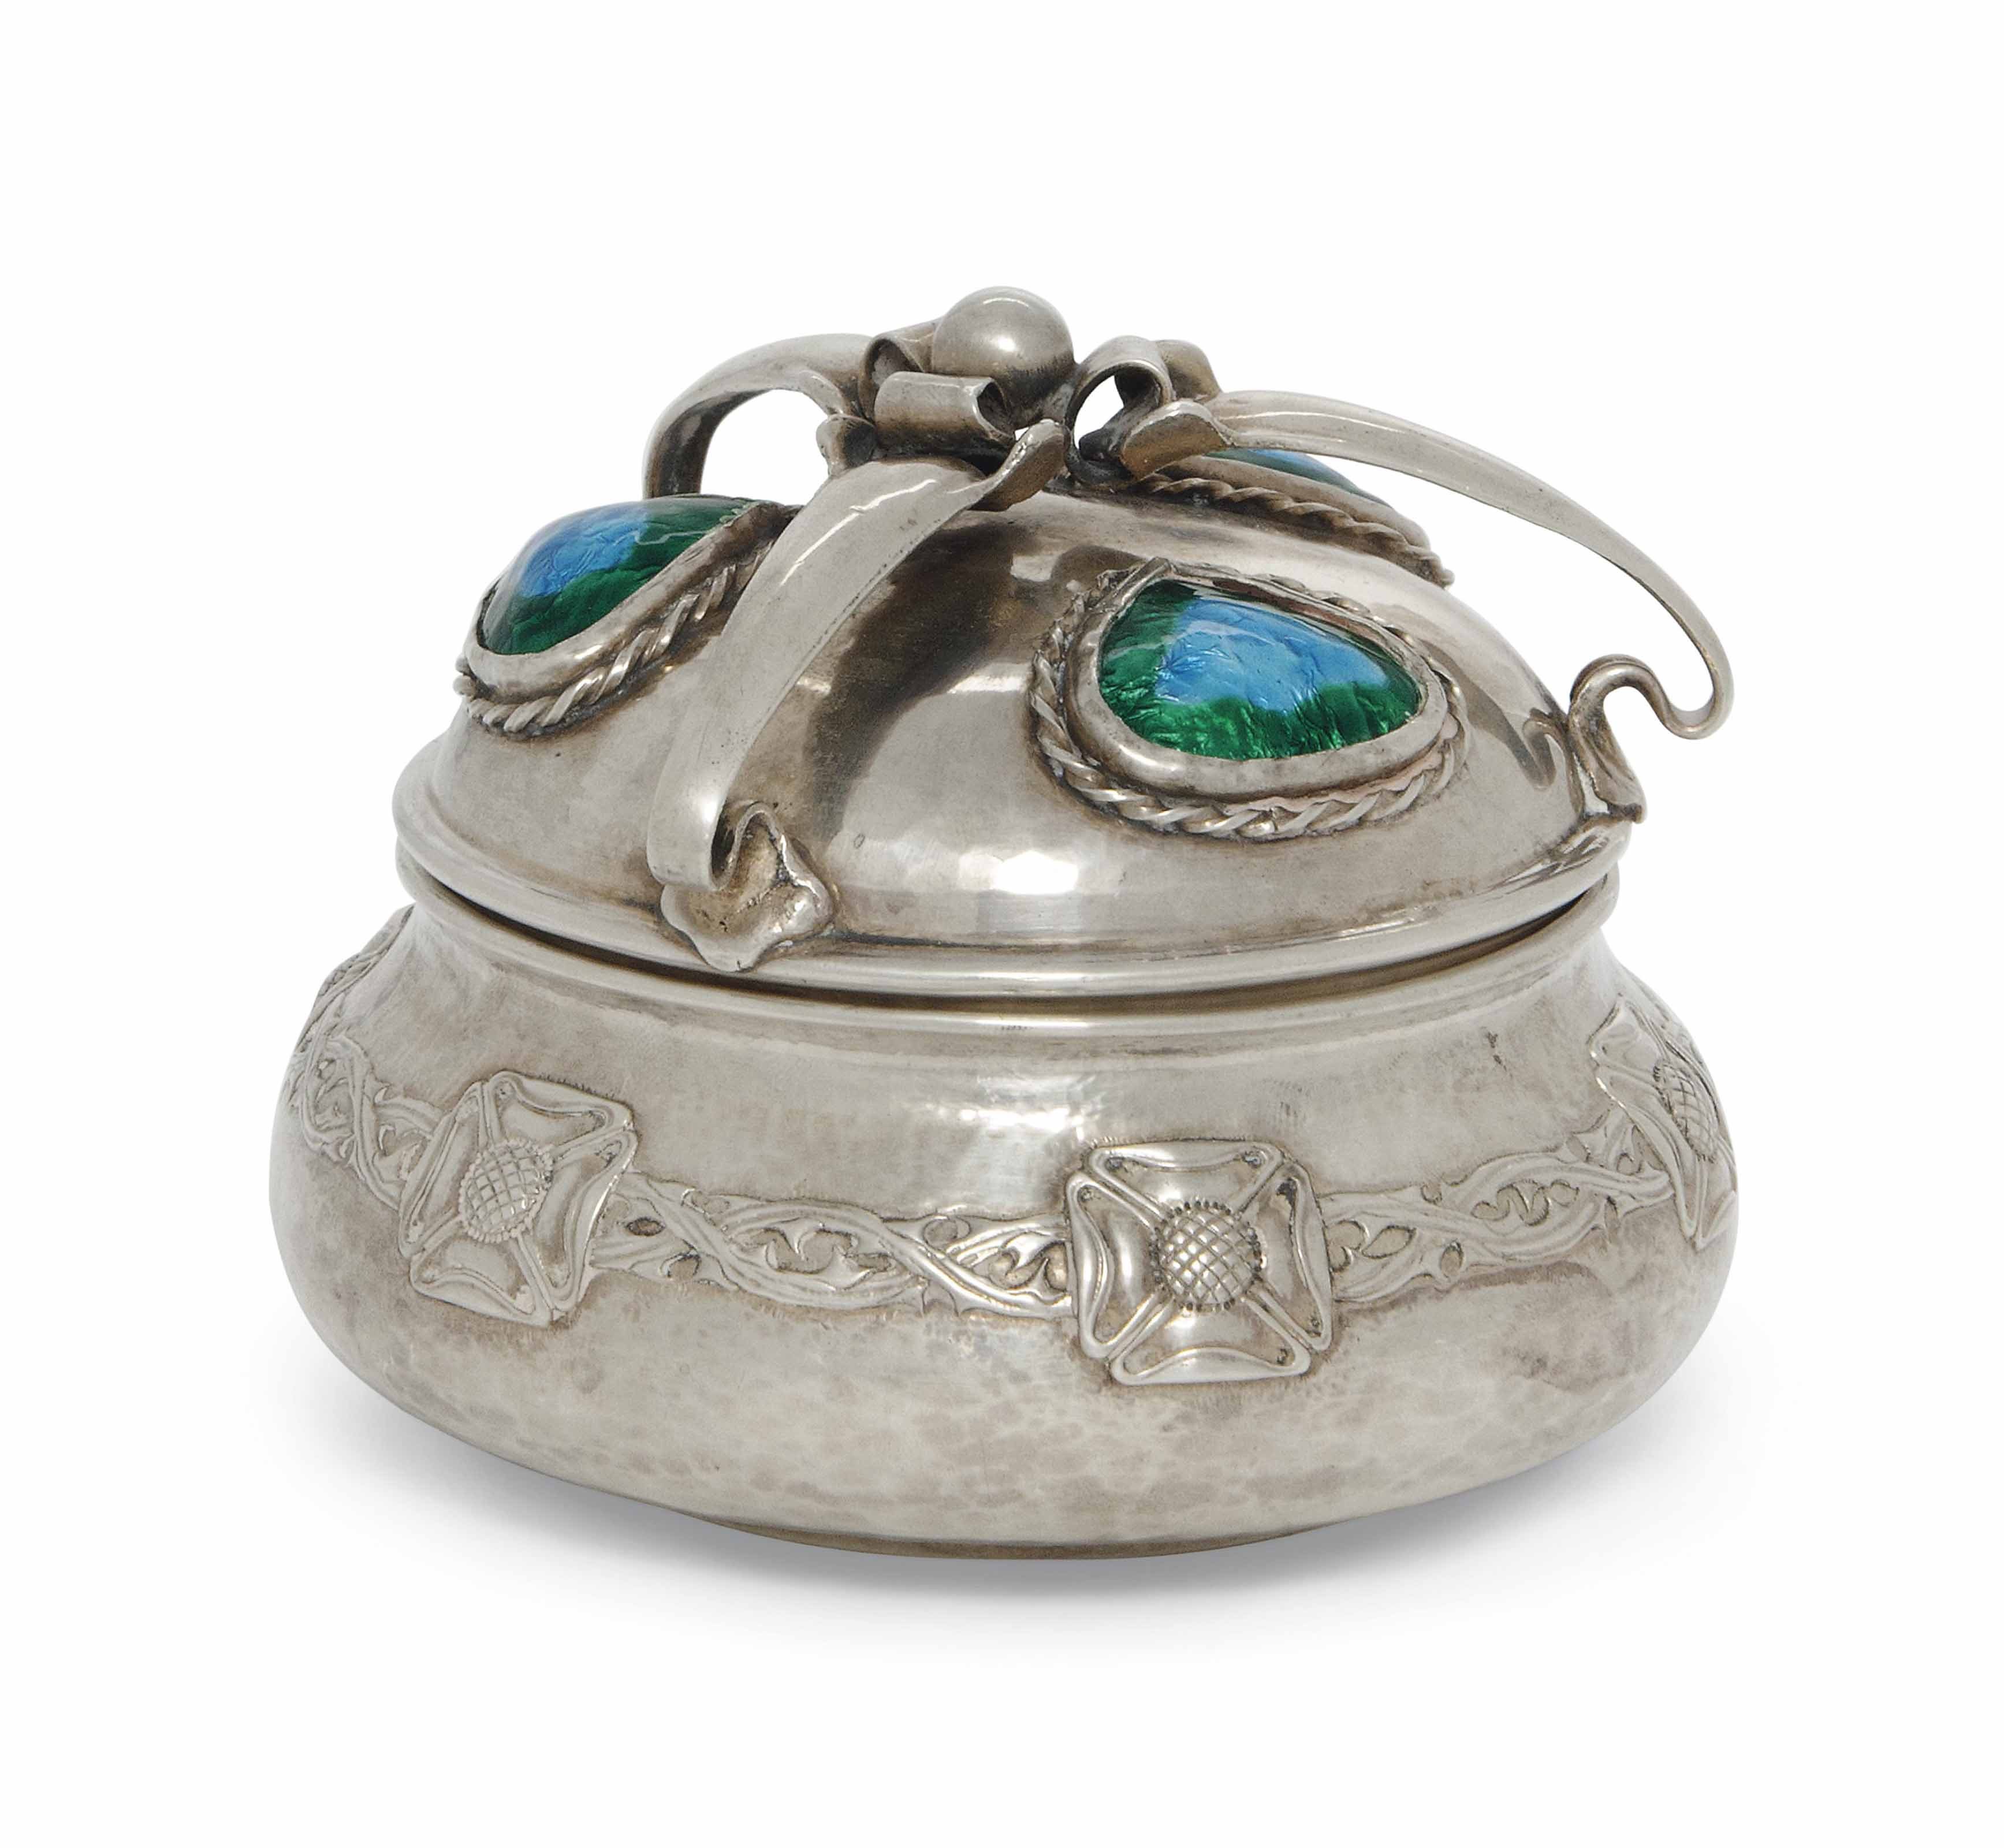 AN EDWARDIAN SILVER AND ENAMEL ARTS AND CRAFTS COVERED POT